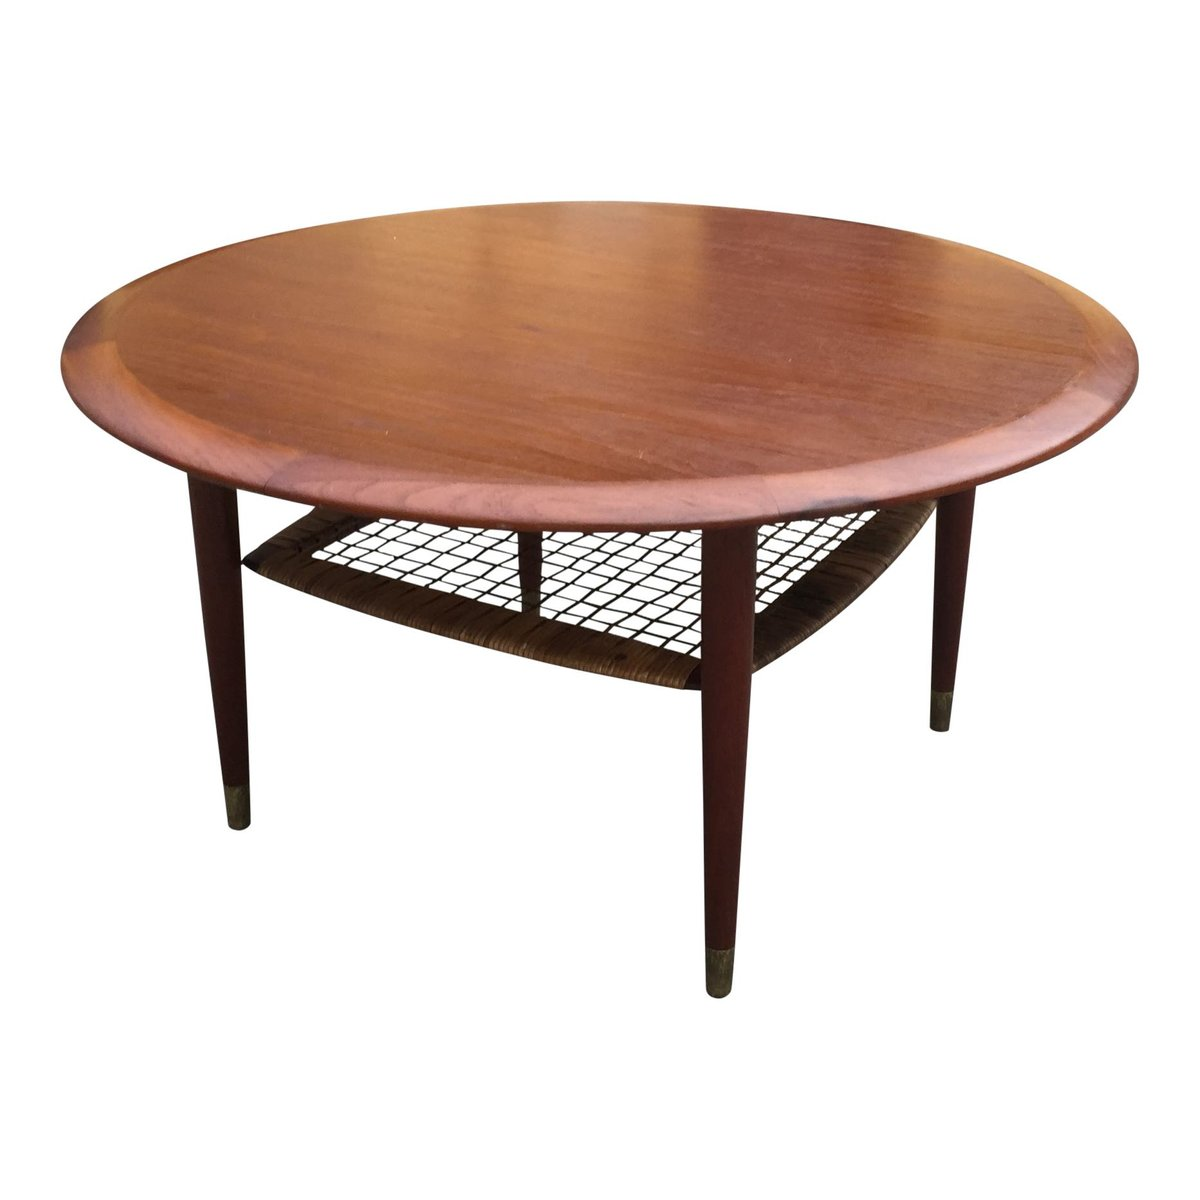 Vintage Danish Round Teak Coffee Table With Shelf For Sale At Pamono